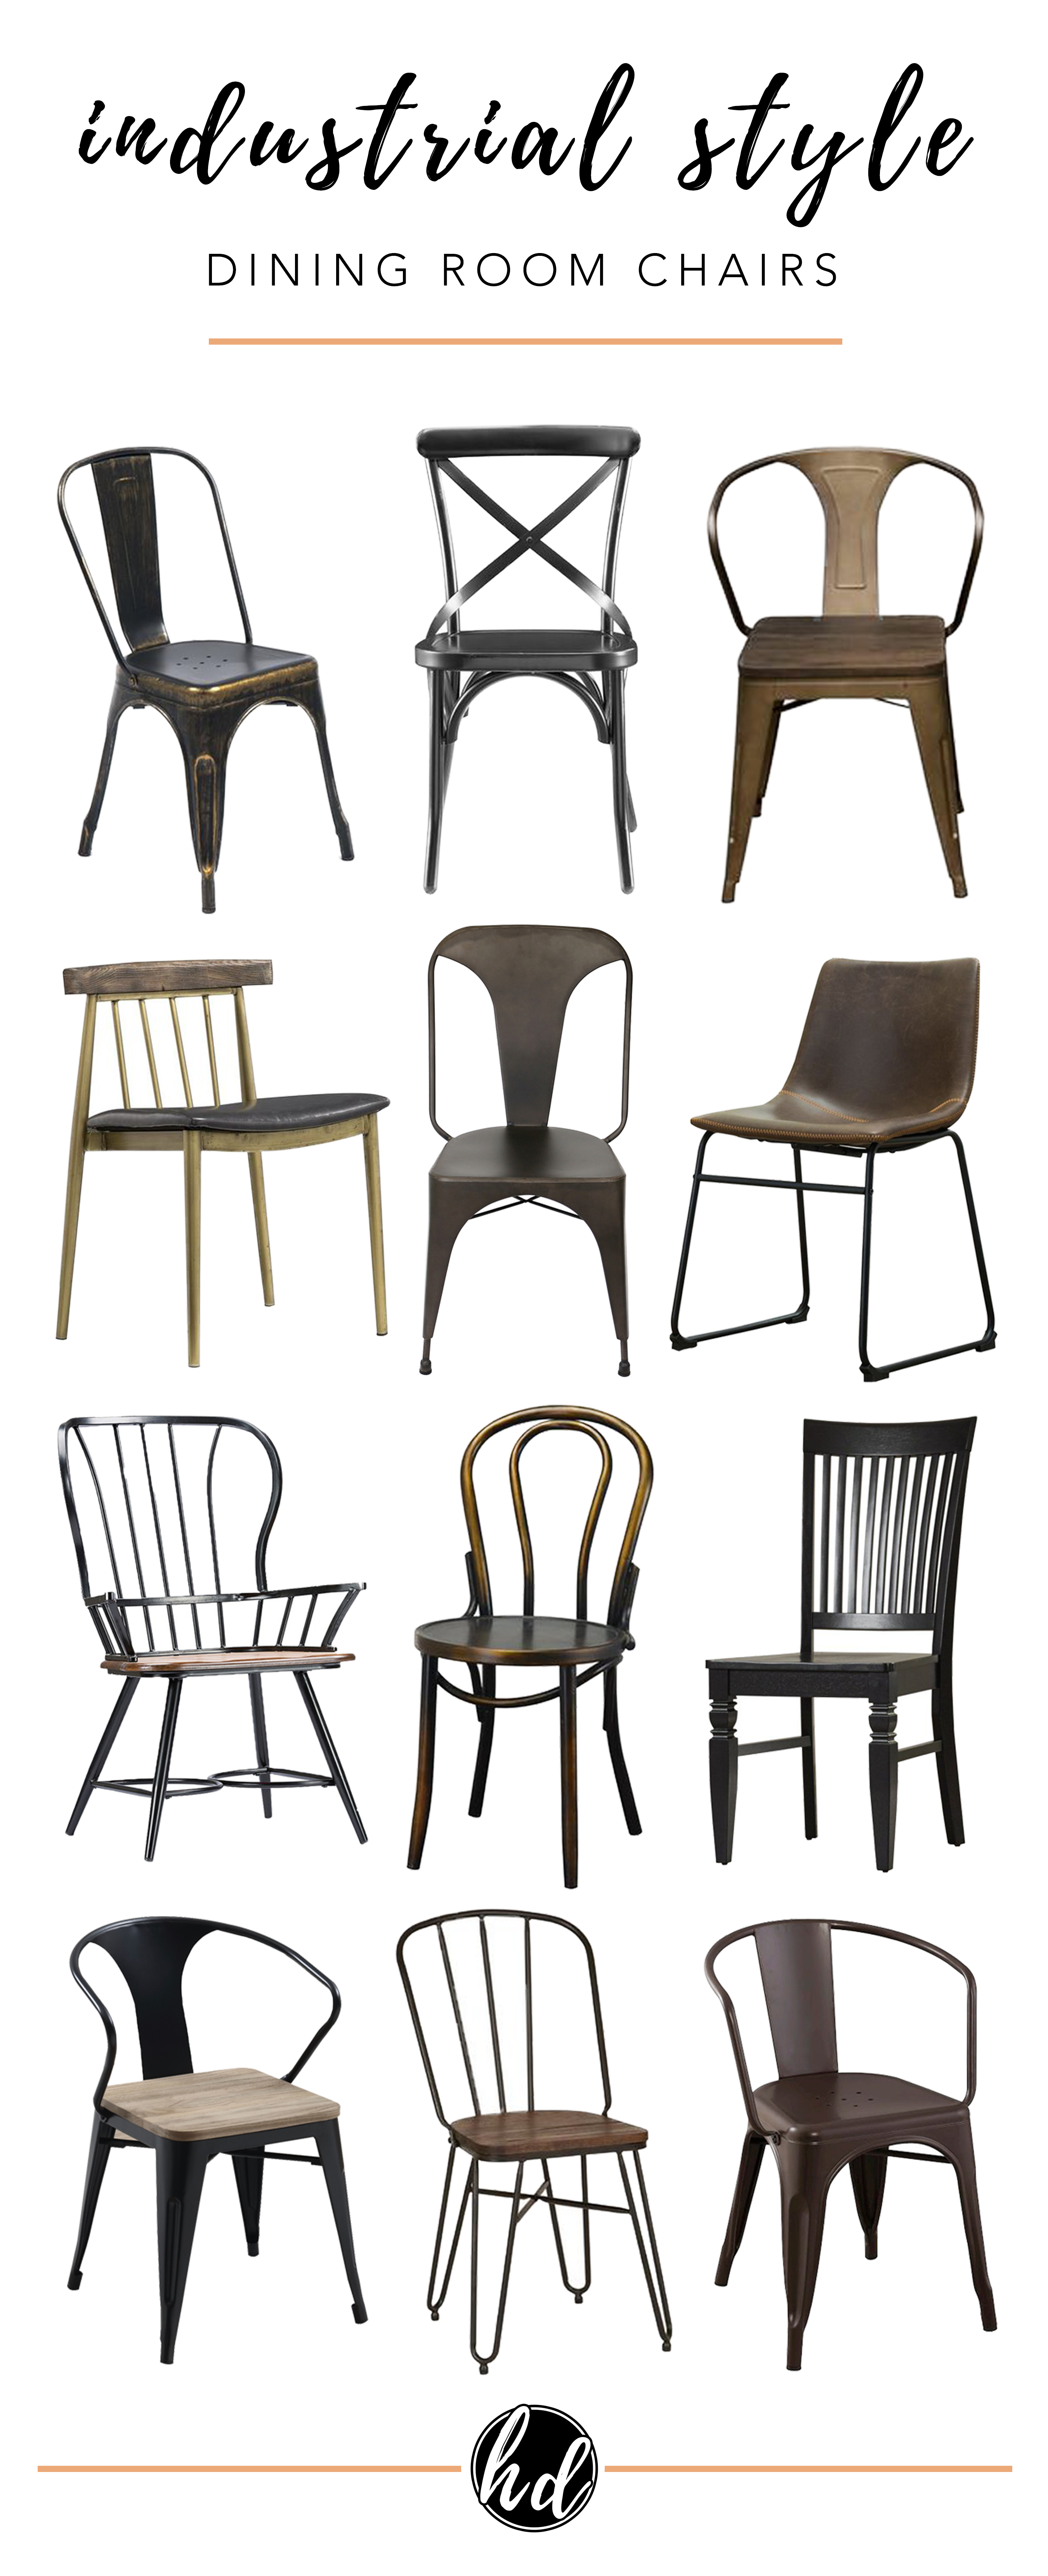 AFFORDABLE MODERN INDUSTRIAL DINING CHAIRS